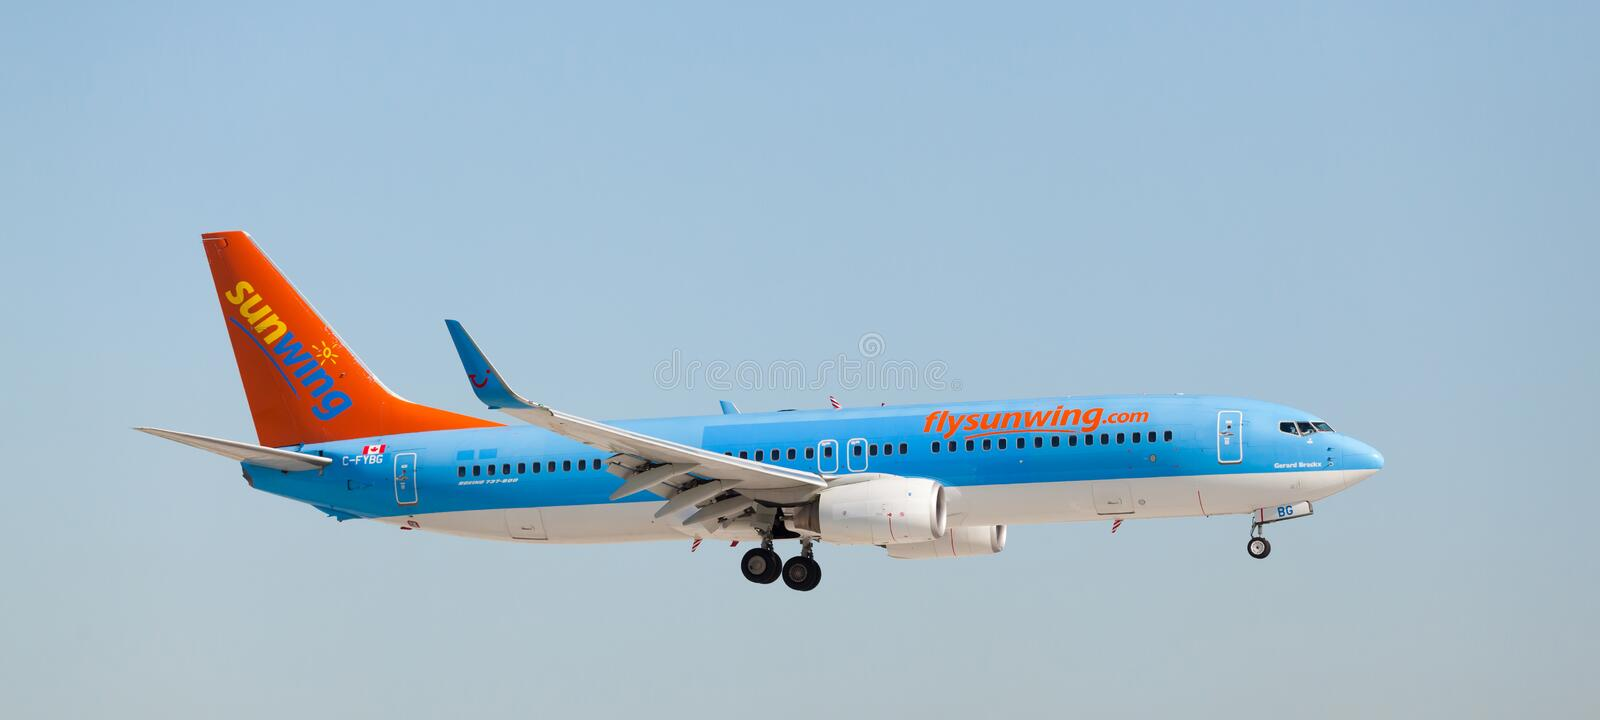 A Sunwing Airlines Boeing 737 landing stock photo